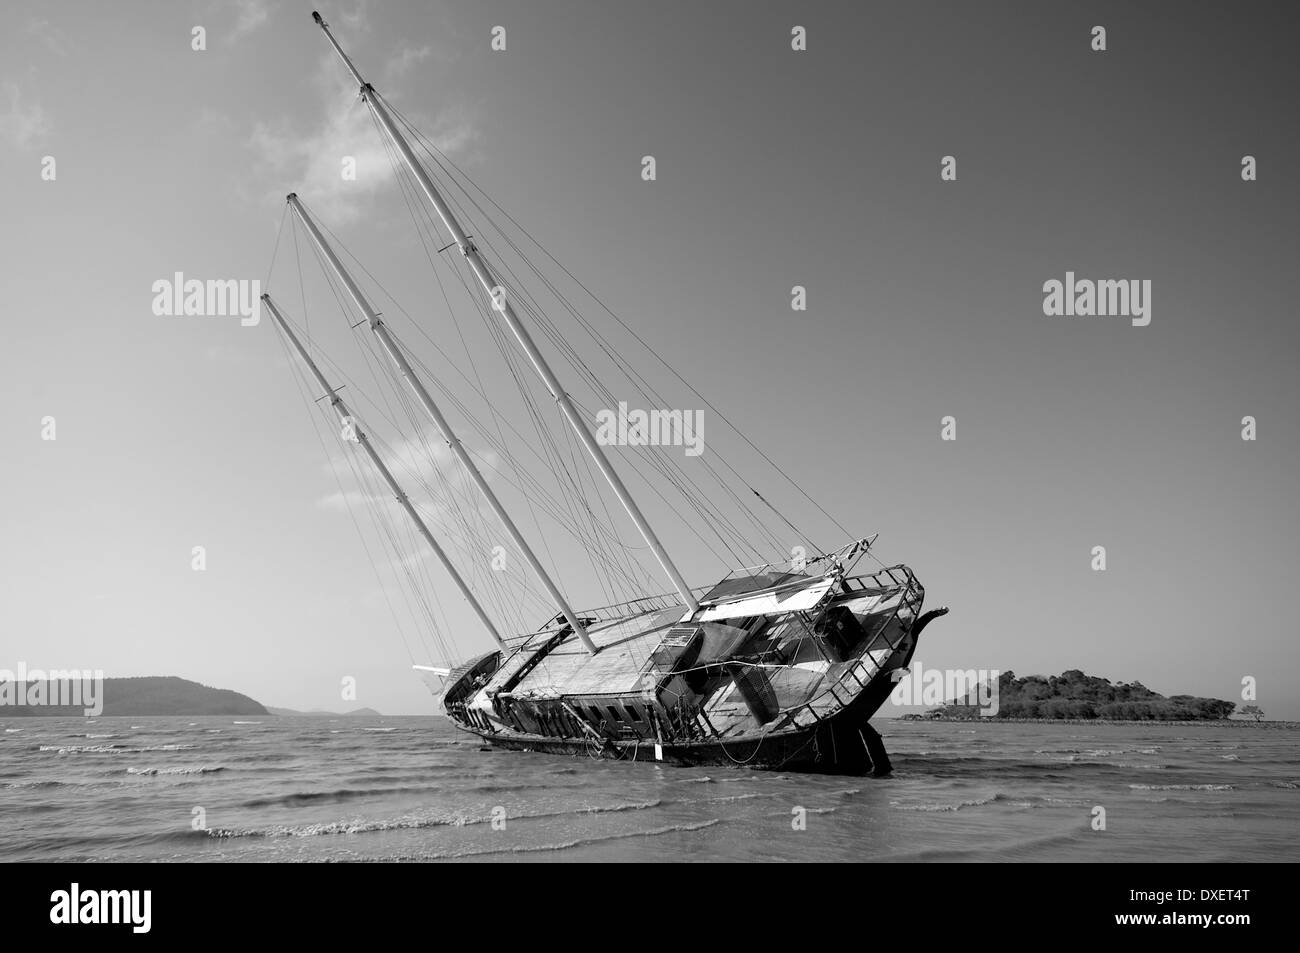 Deserted sailing boat on Cannonvale Beach, in black & white - Stock Image